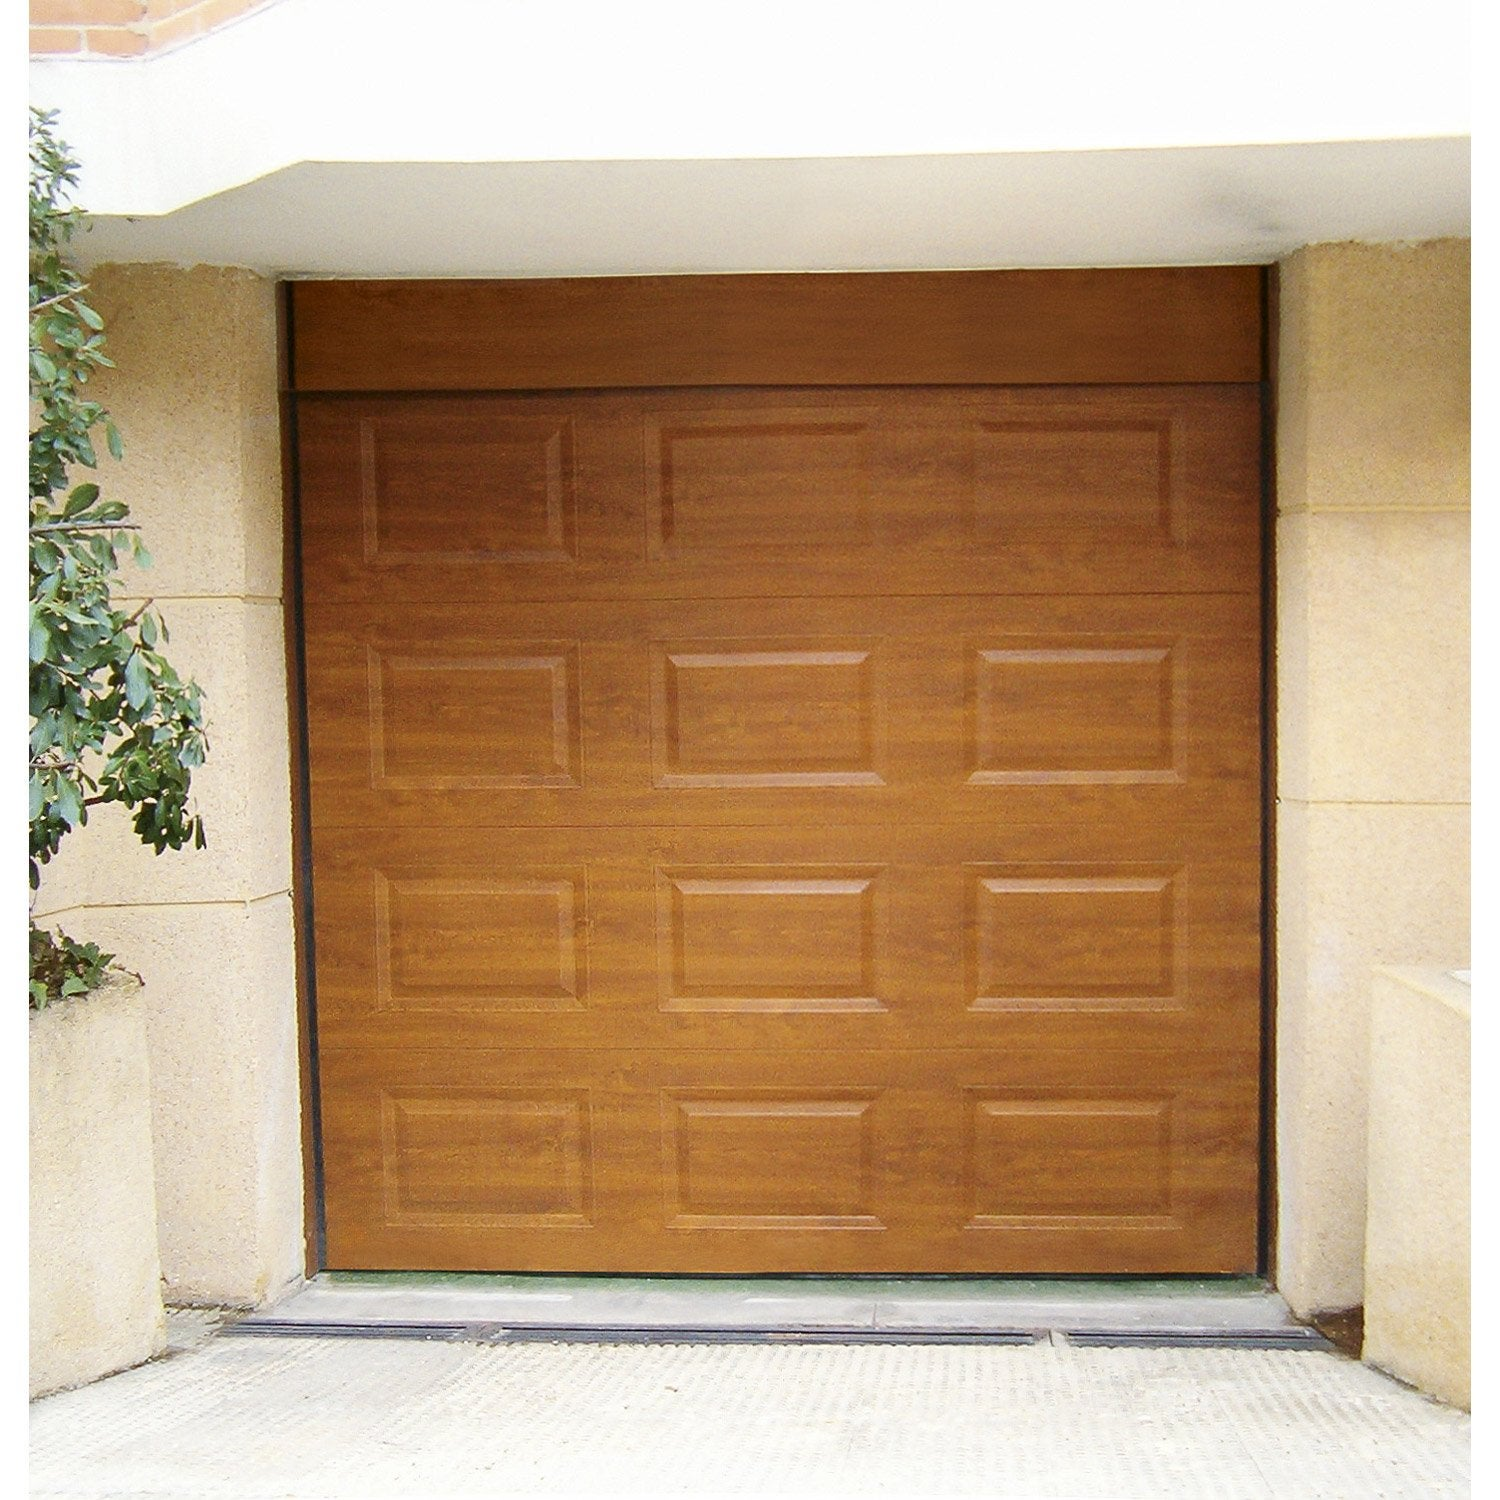 Porte de garage sectionnelle artens x cm leroy merlin - Leroy merlin porte garage sectionnelle ...